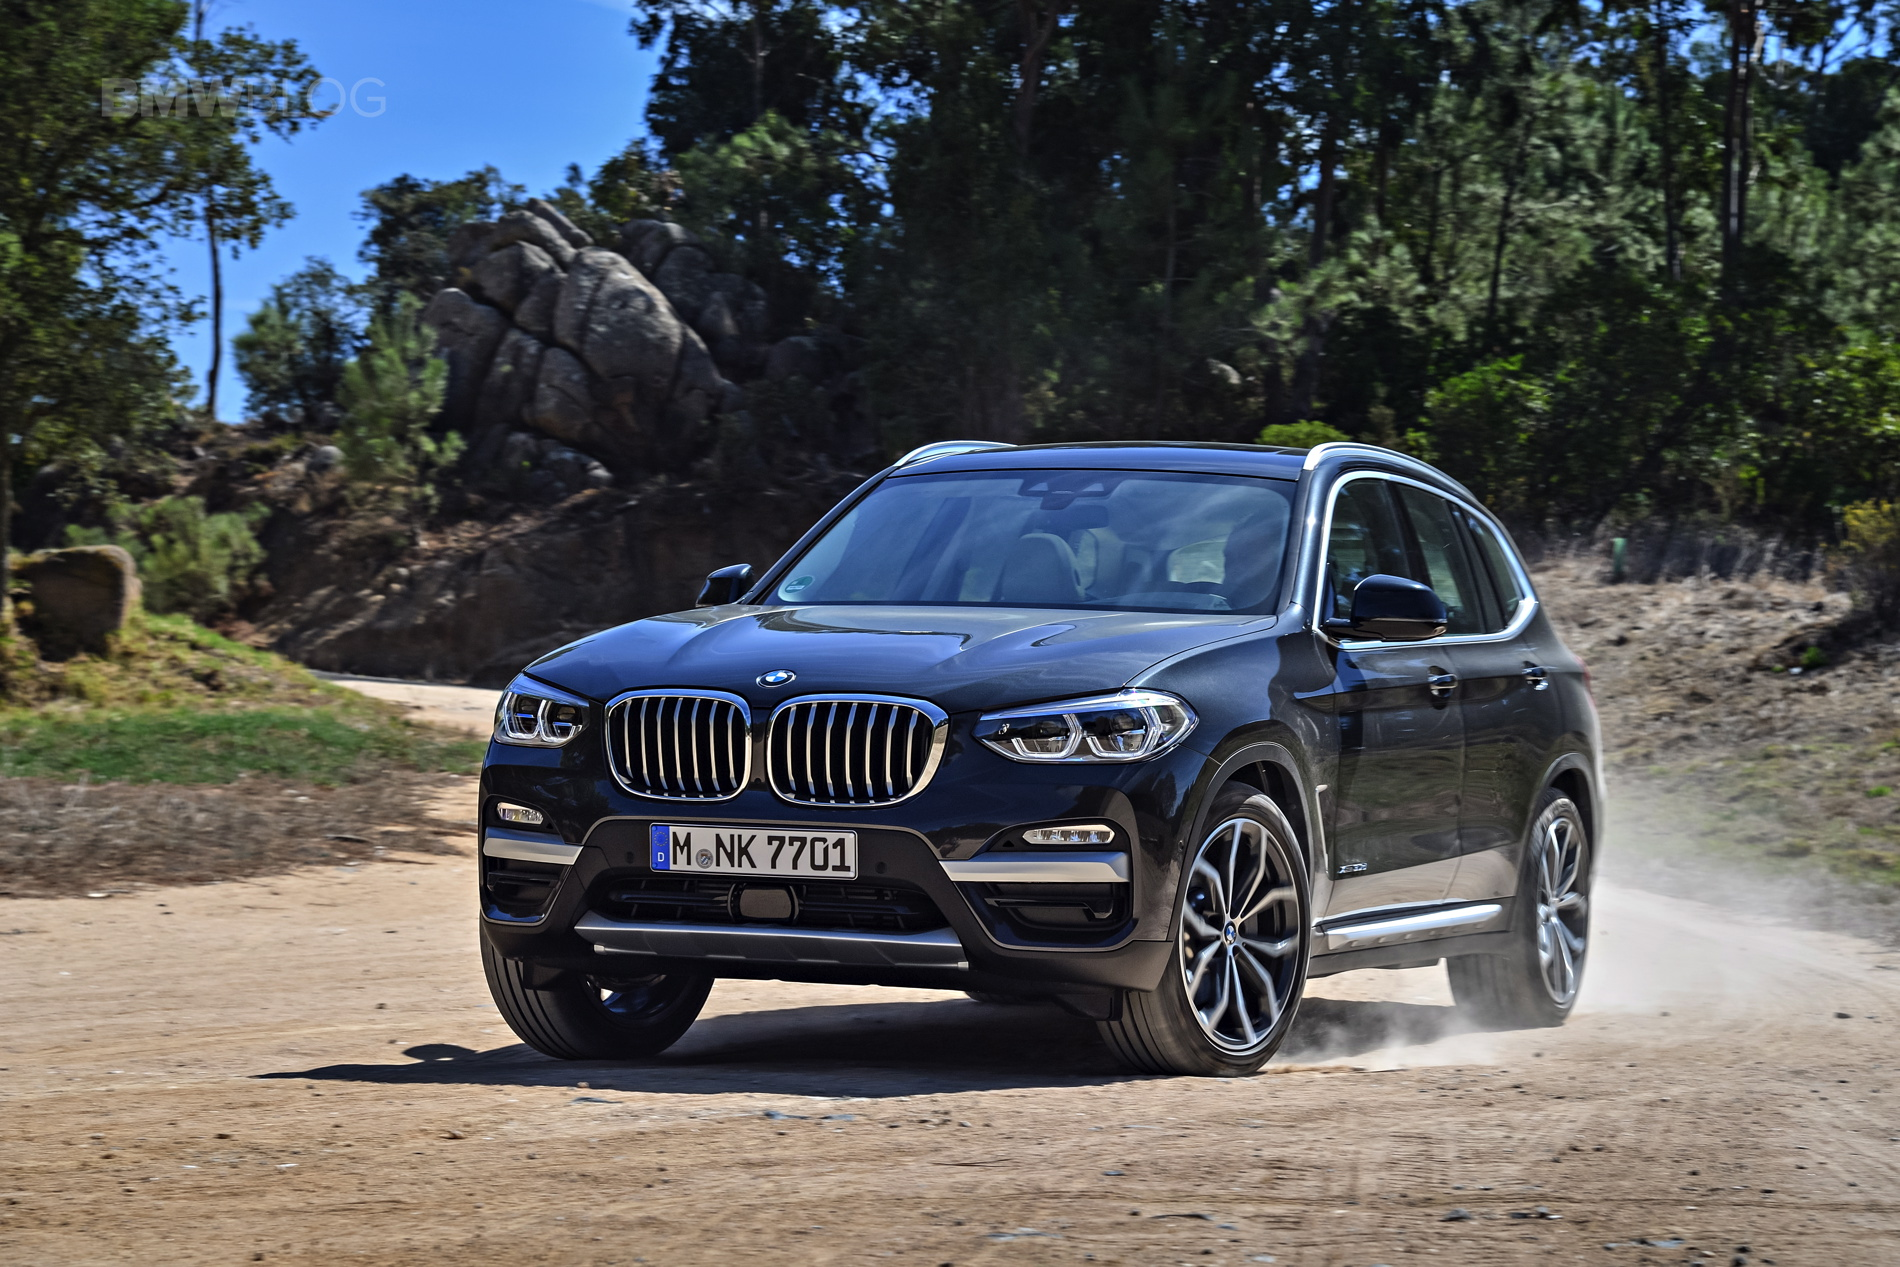 2018 BMW X3 xDrive30D photoshoot 76